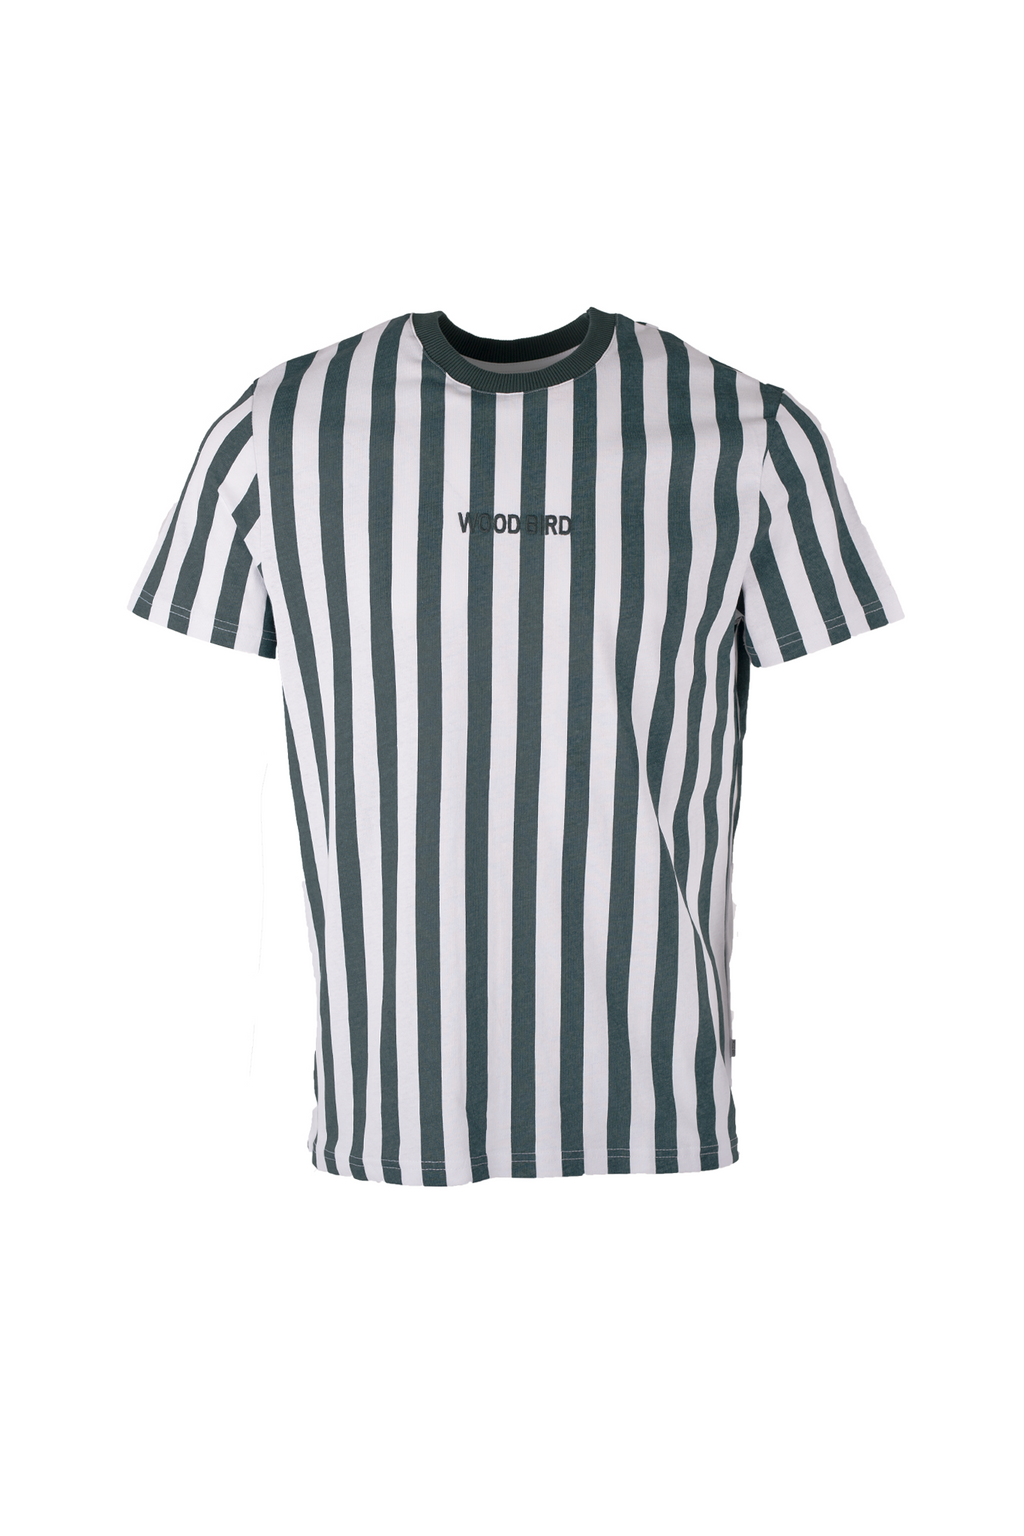 Soccer Tee - Green Striped